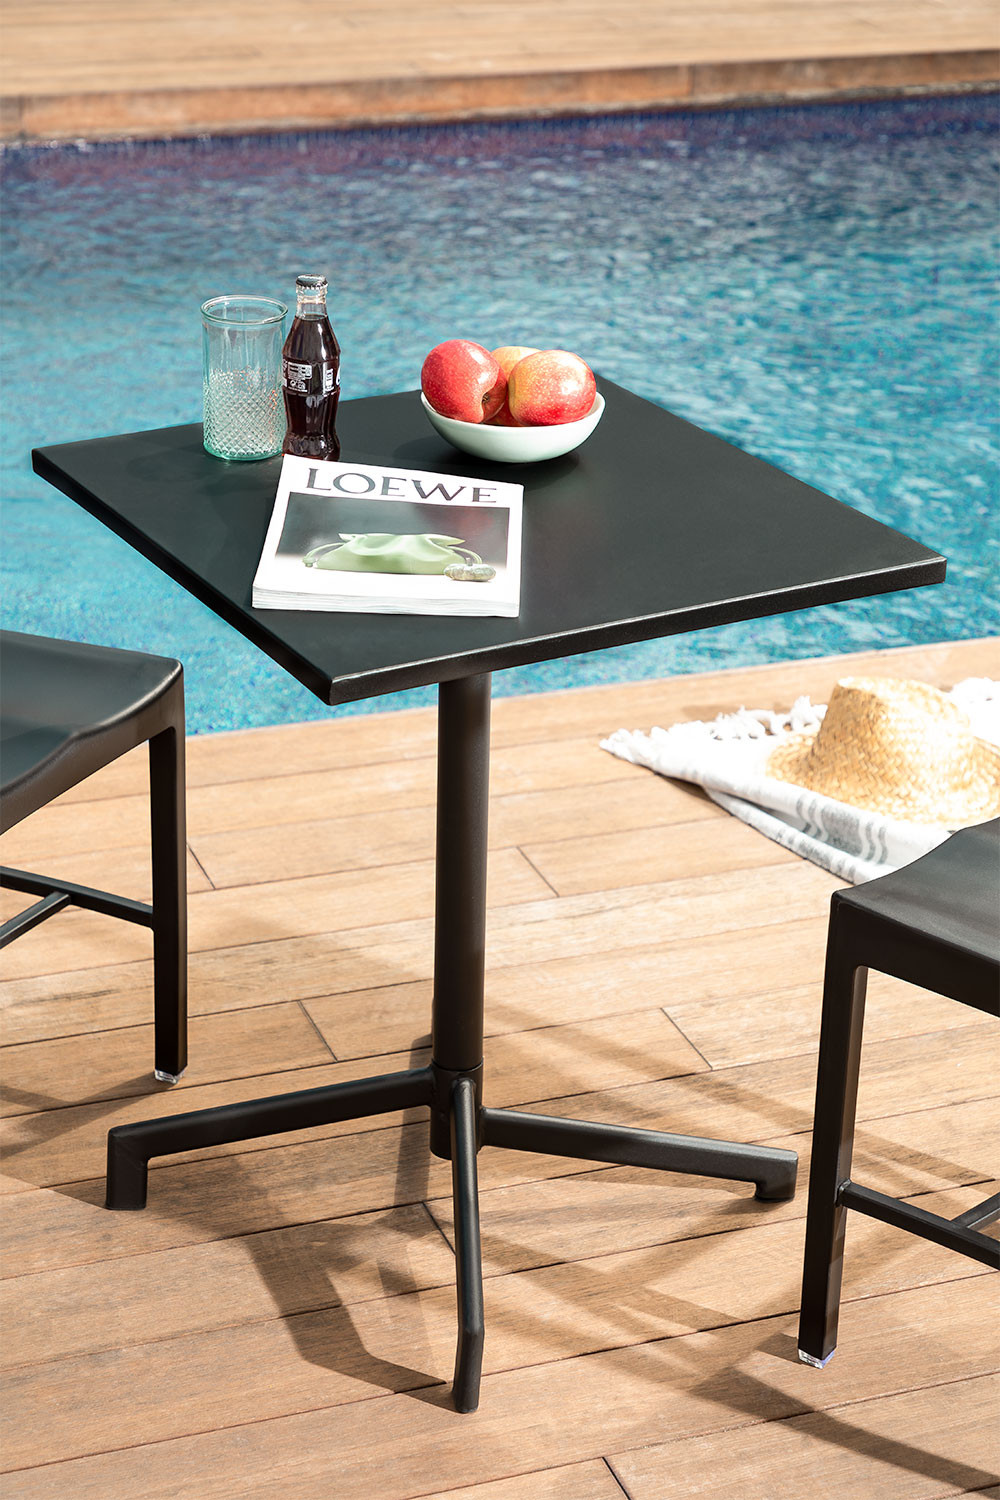 Steel Foldable & Convertible Bar Table in 2 heights Dely (60x60 cm) , gallery image 1